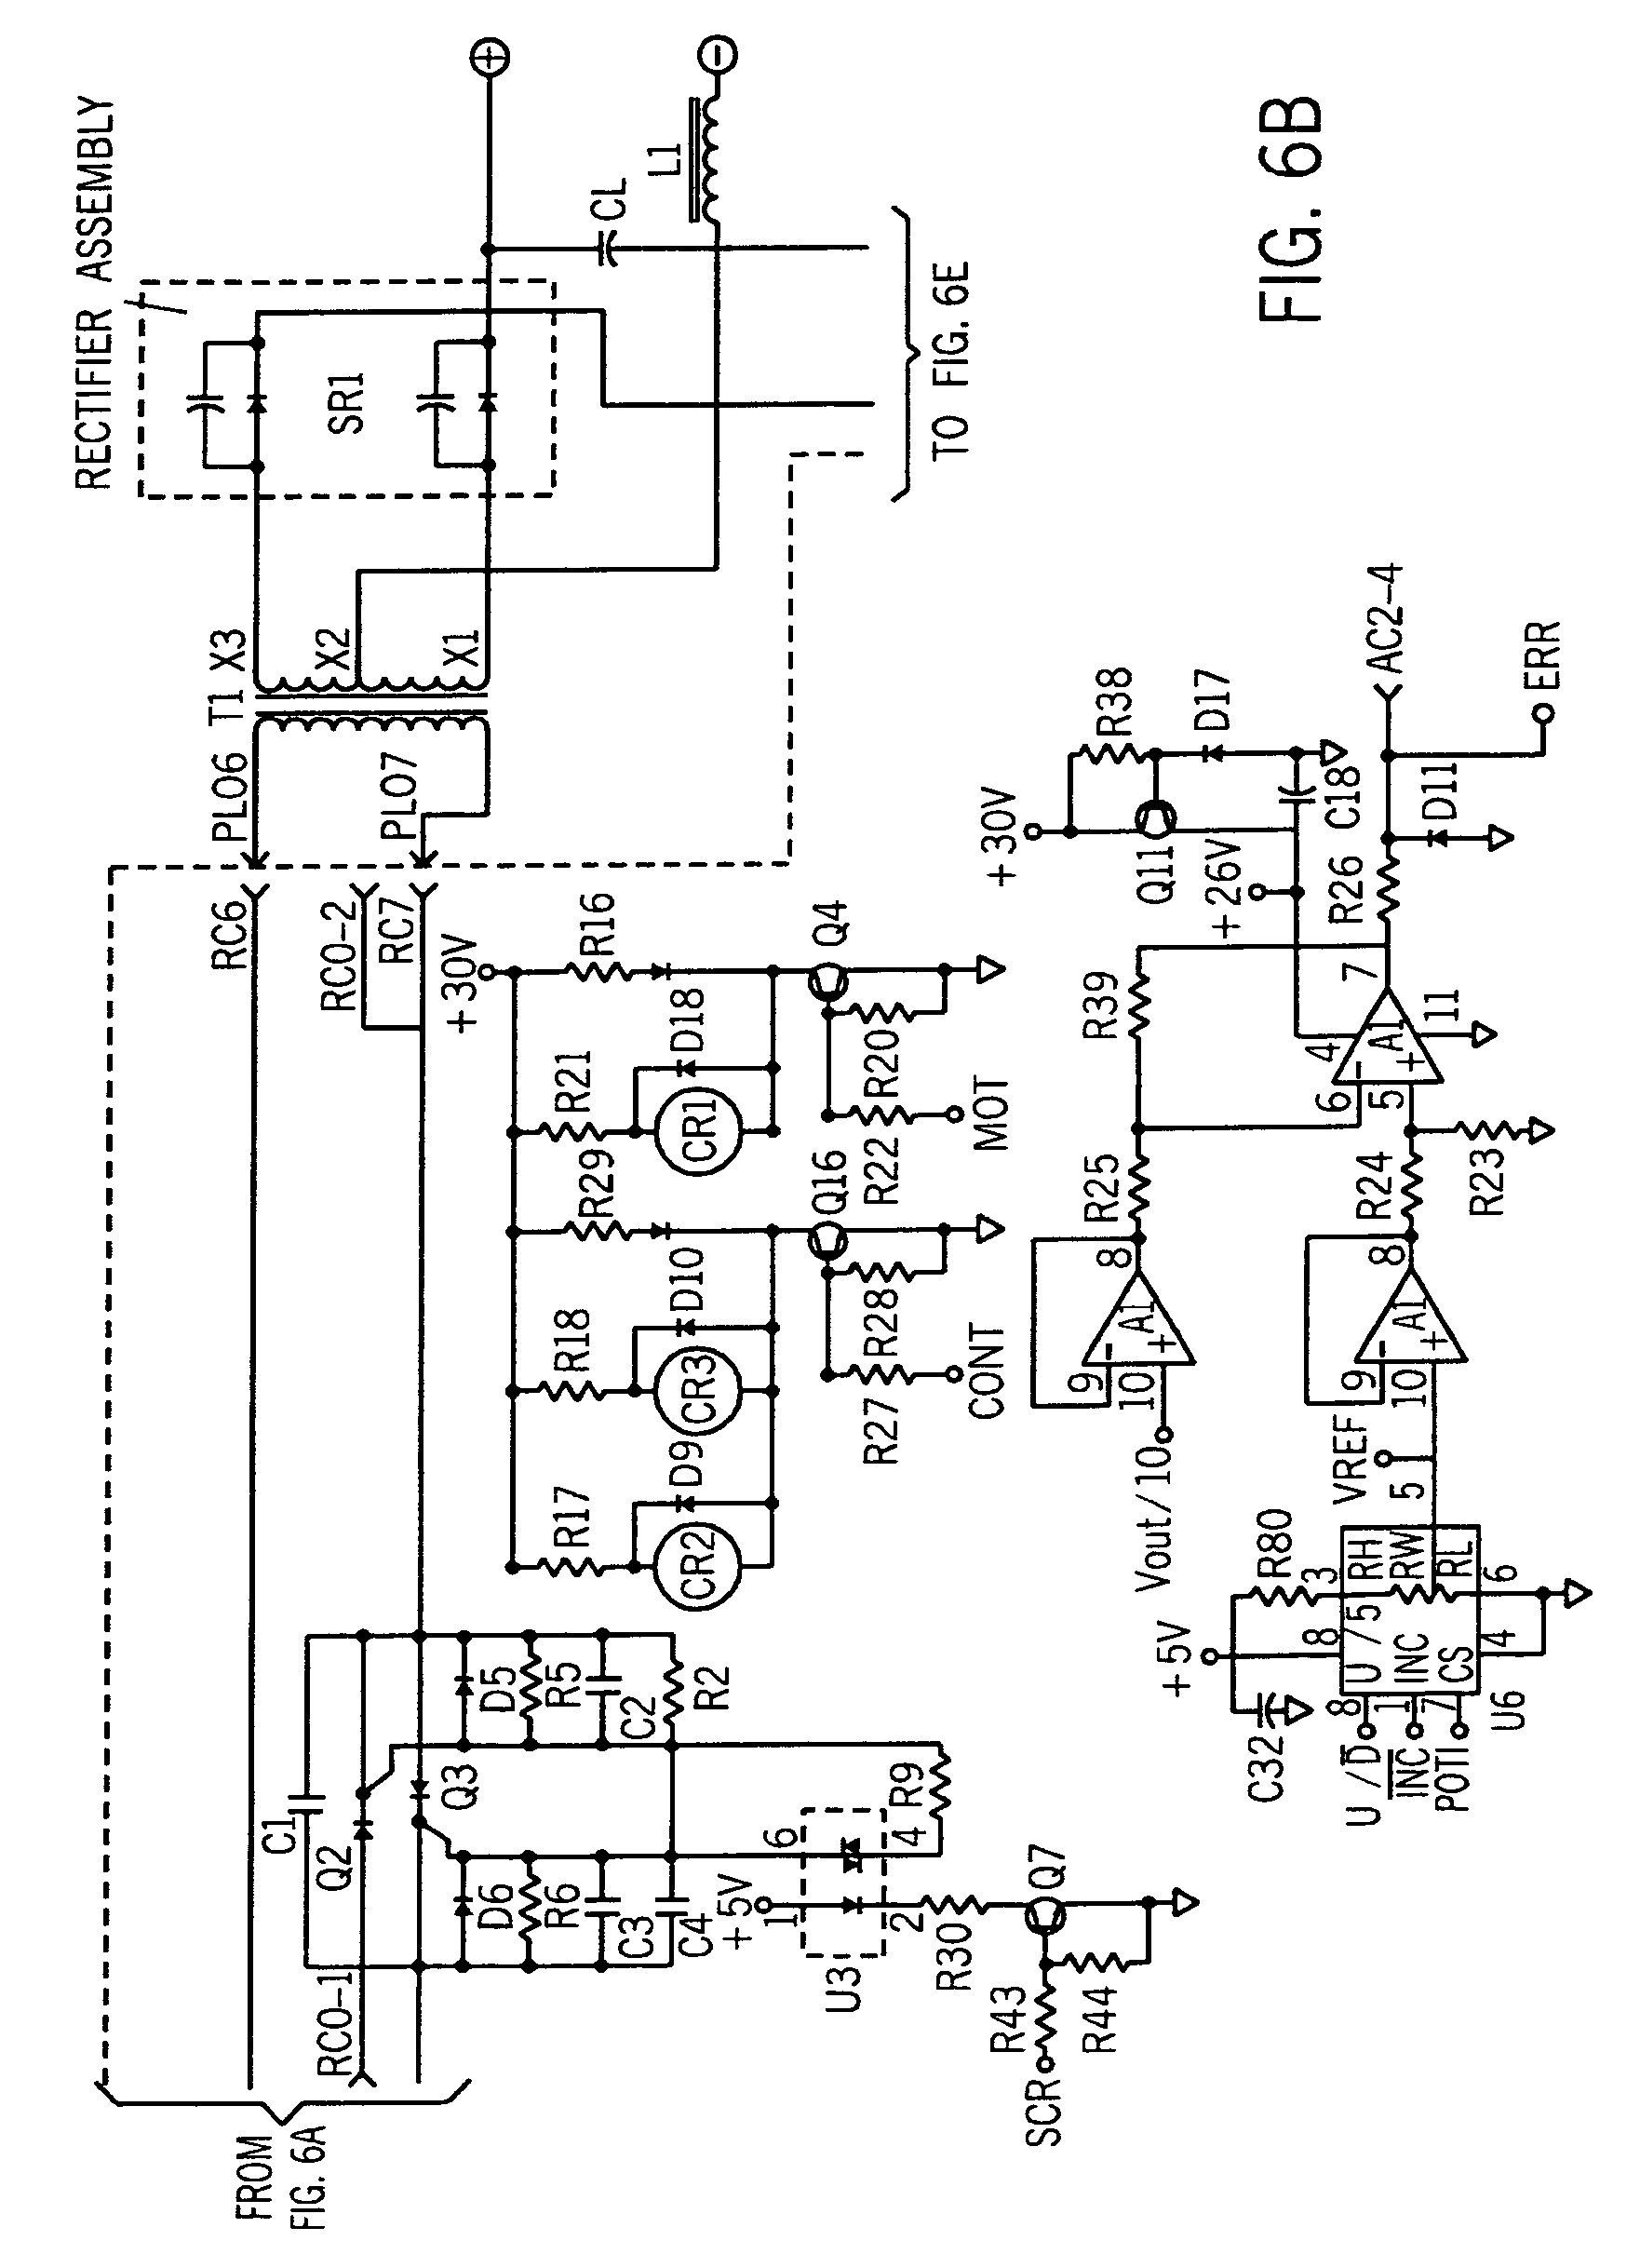 Hobart Welder Diagram Wiring Diagrams Tig 28 Images Mig